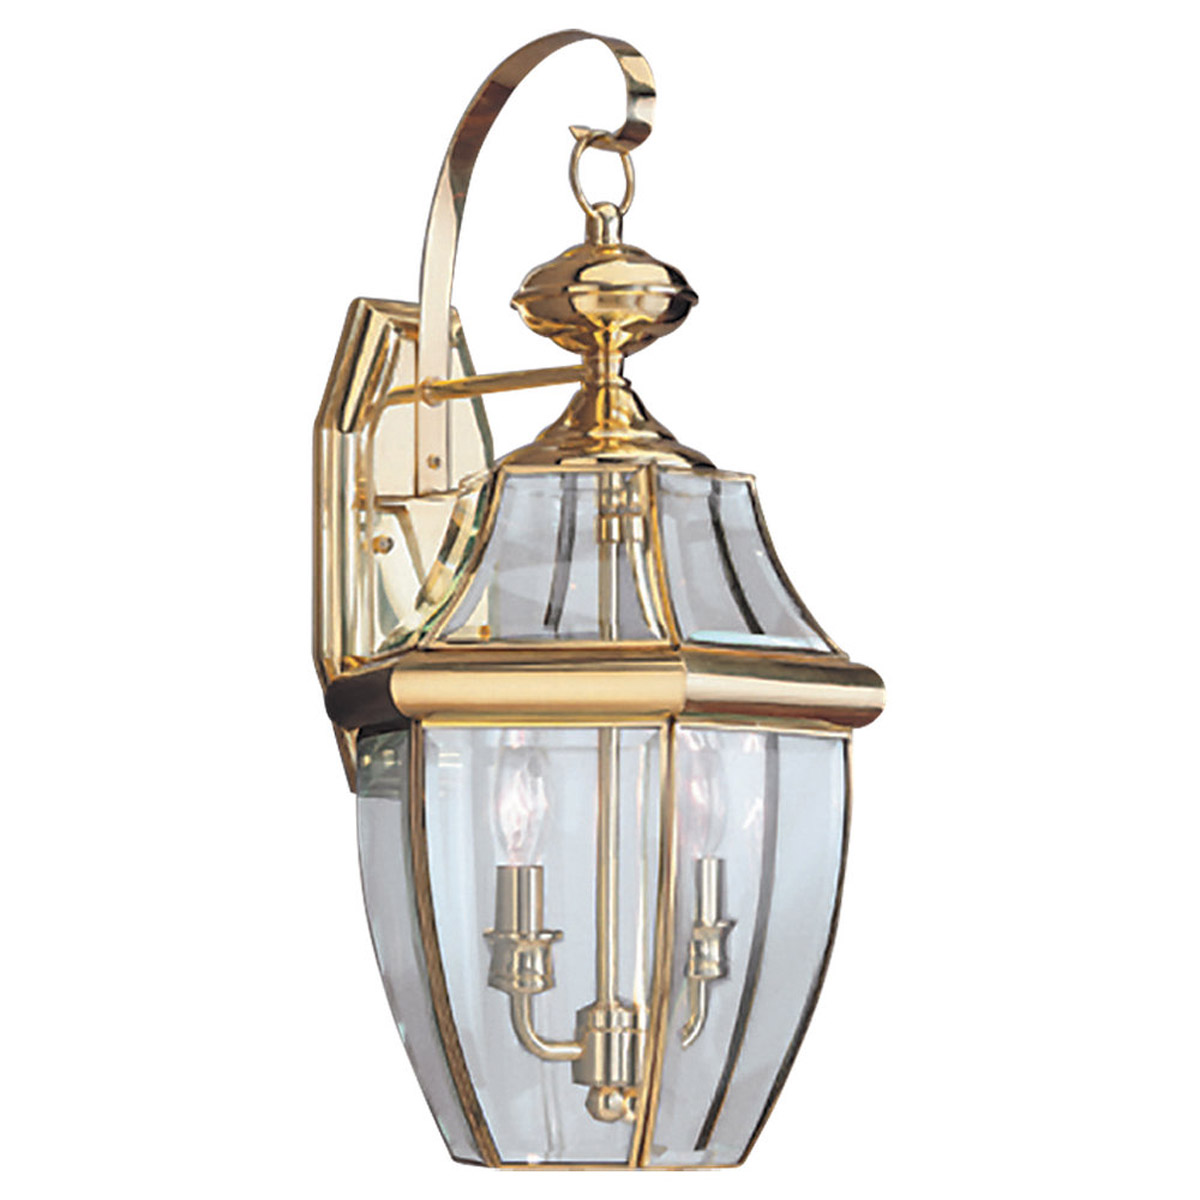 Sea Gull Lighting Lancaster 2 Light Outdoor Wall Lantern in Polished Brass 8039-02 photo